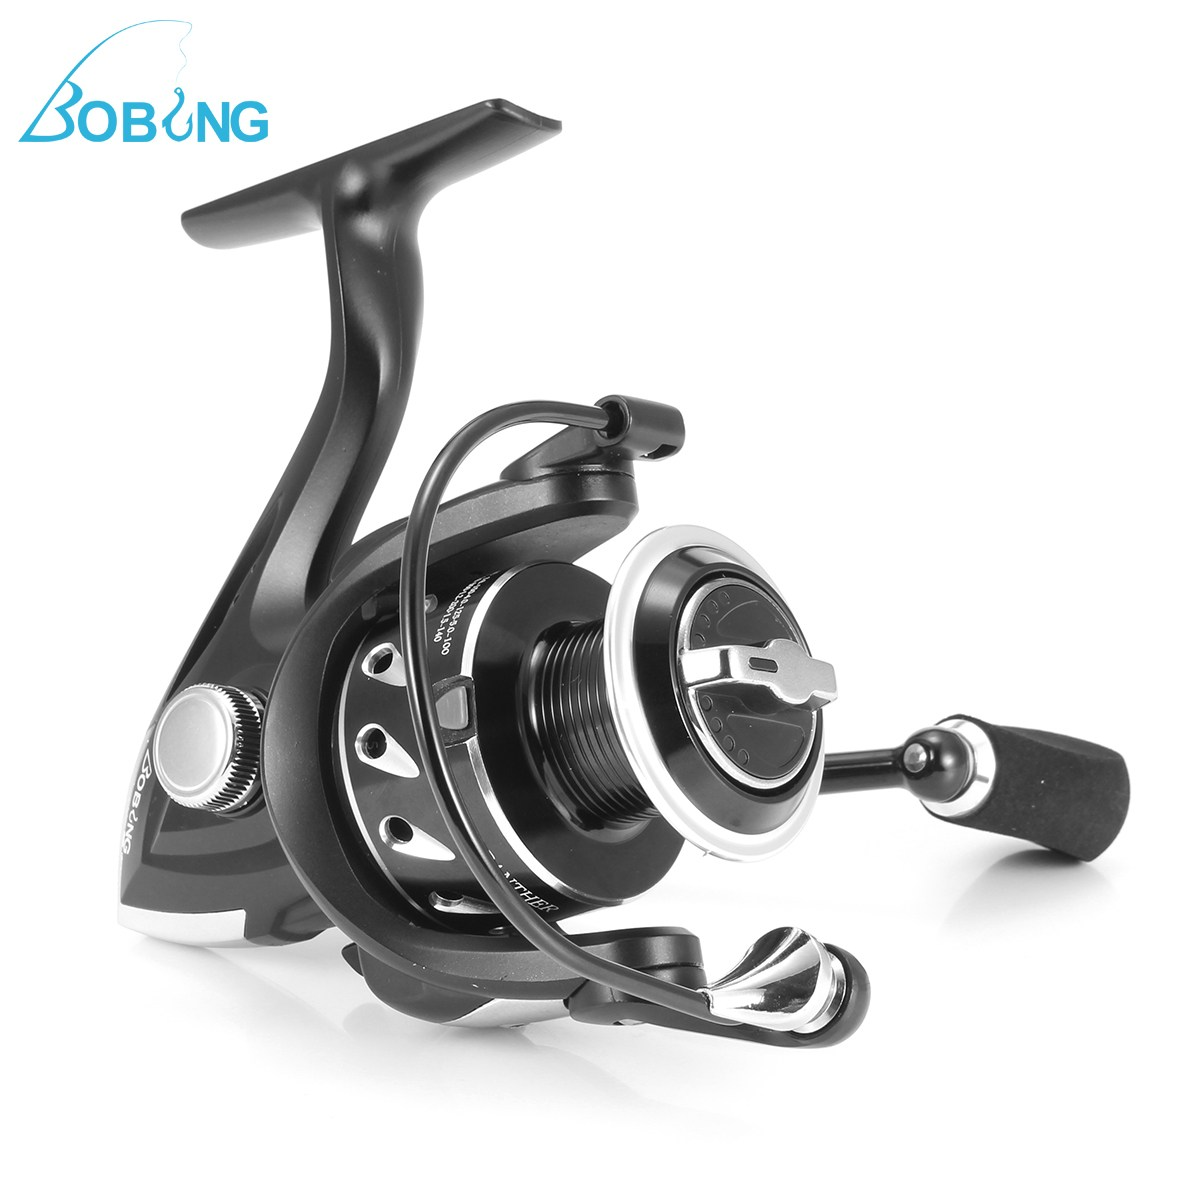 Bobing Metal Spool Spinning Fishing Reel 10+1BB 5.1:1 Carp Sea Salt Fresh Water Drag Casting Wheel Left/Right Hand Tackle Gear 3000l rear drag spinning carp bait casting trolling boat sea fishing reel